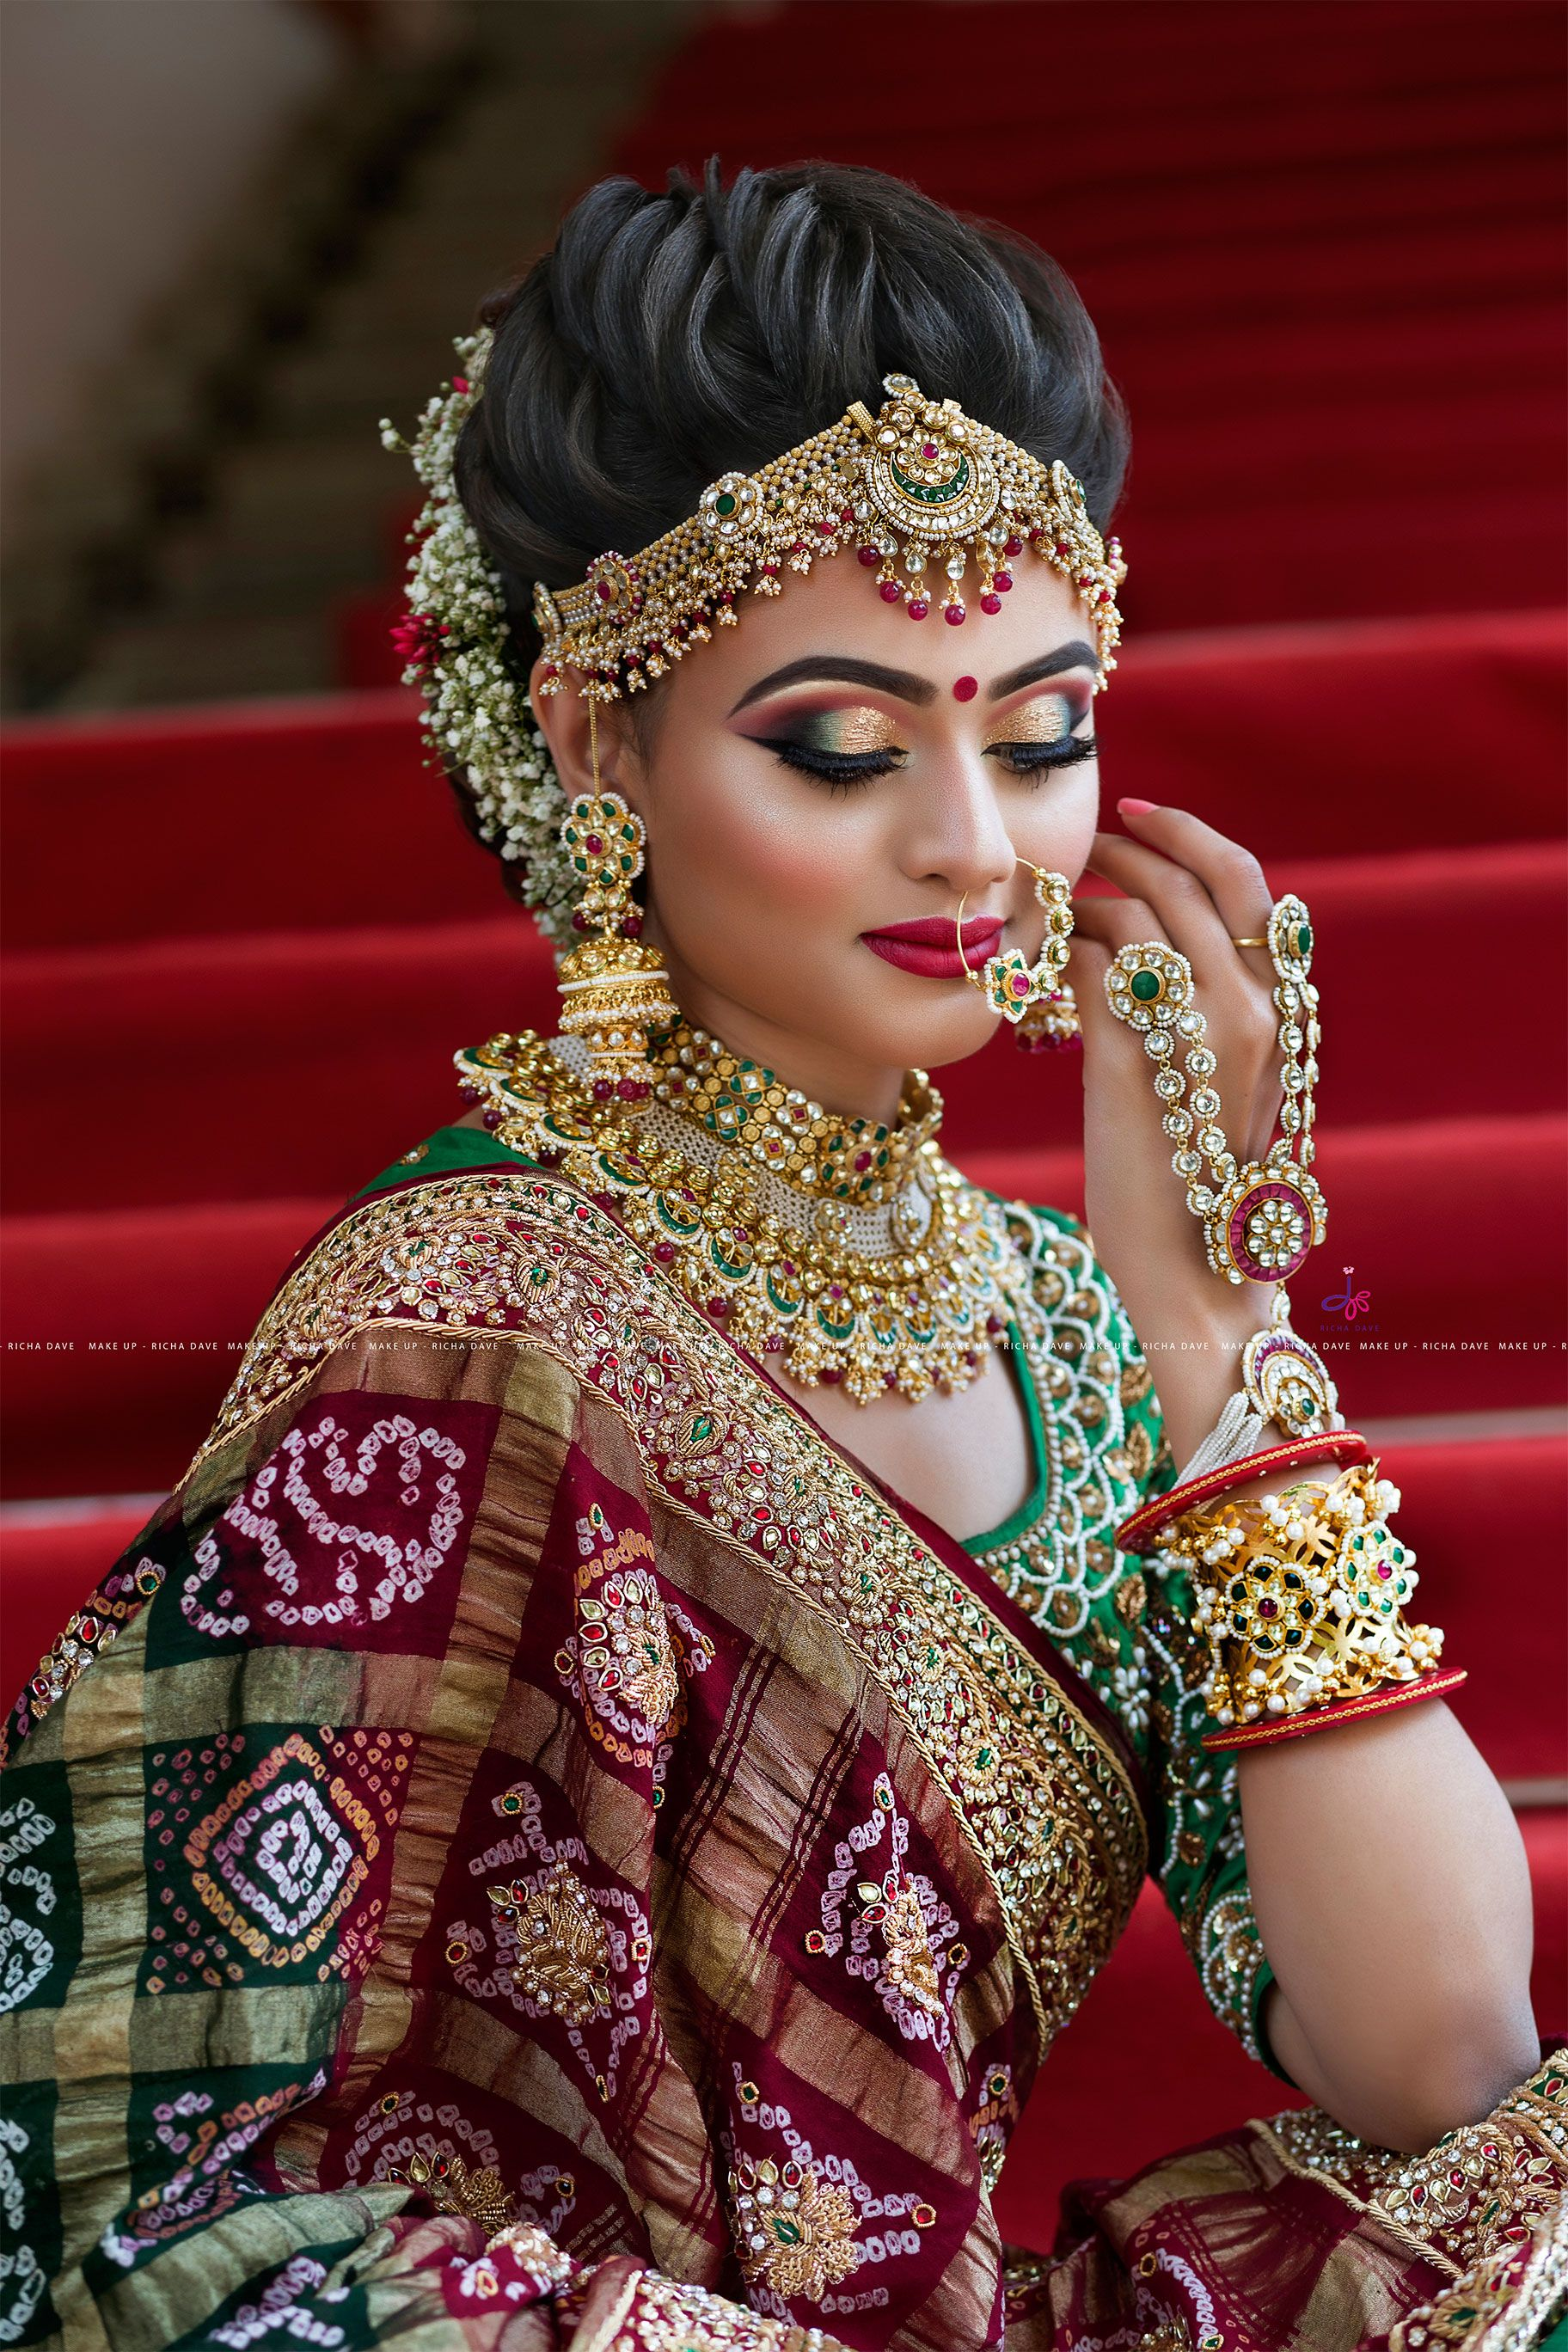 bec42e75e Gujarati Bridal Look | Indian bridal jewelry in 2019 | Bridal ...